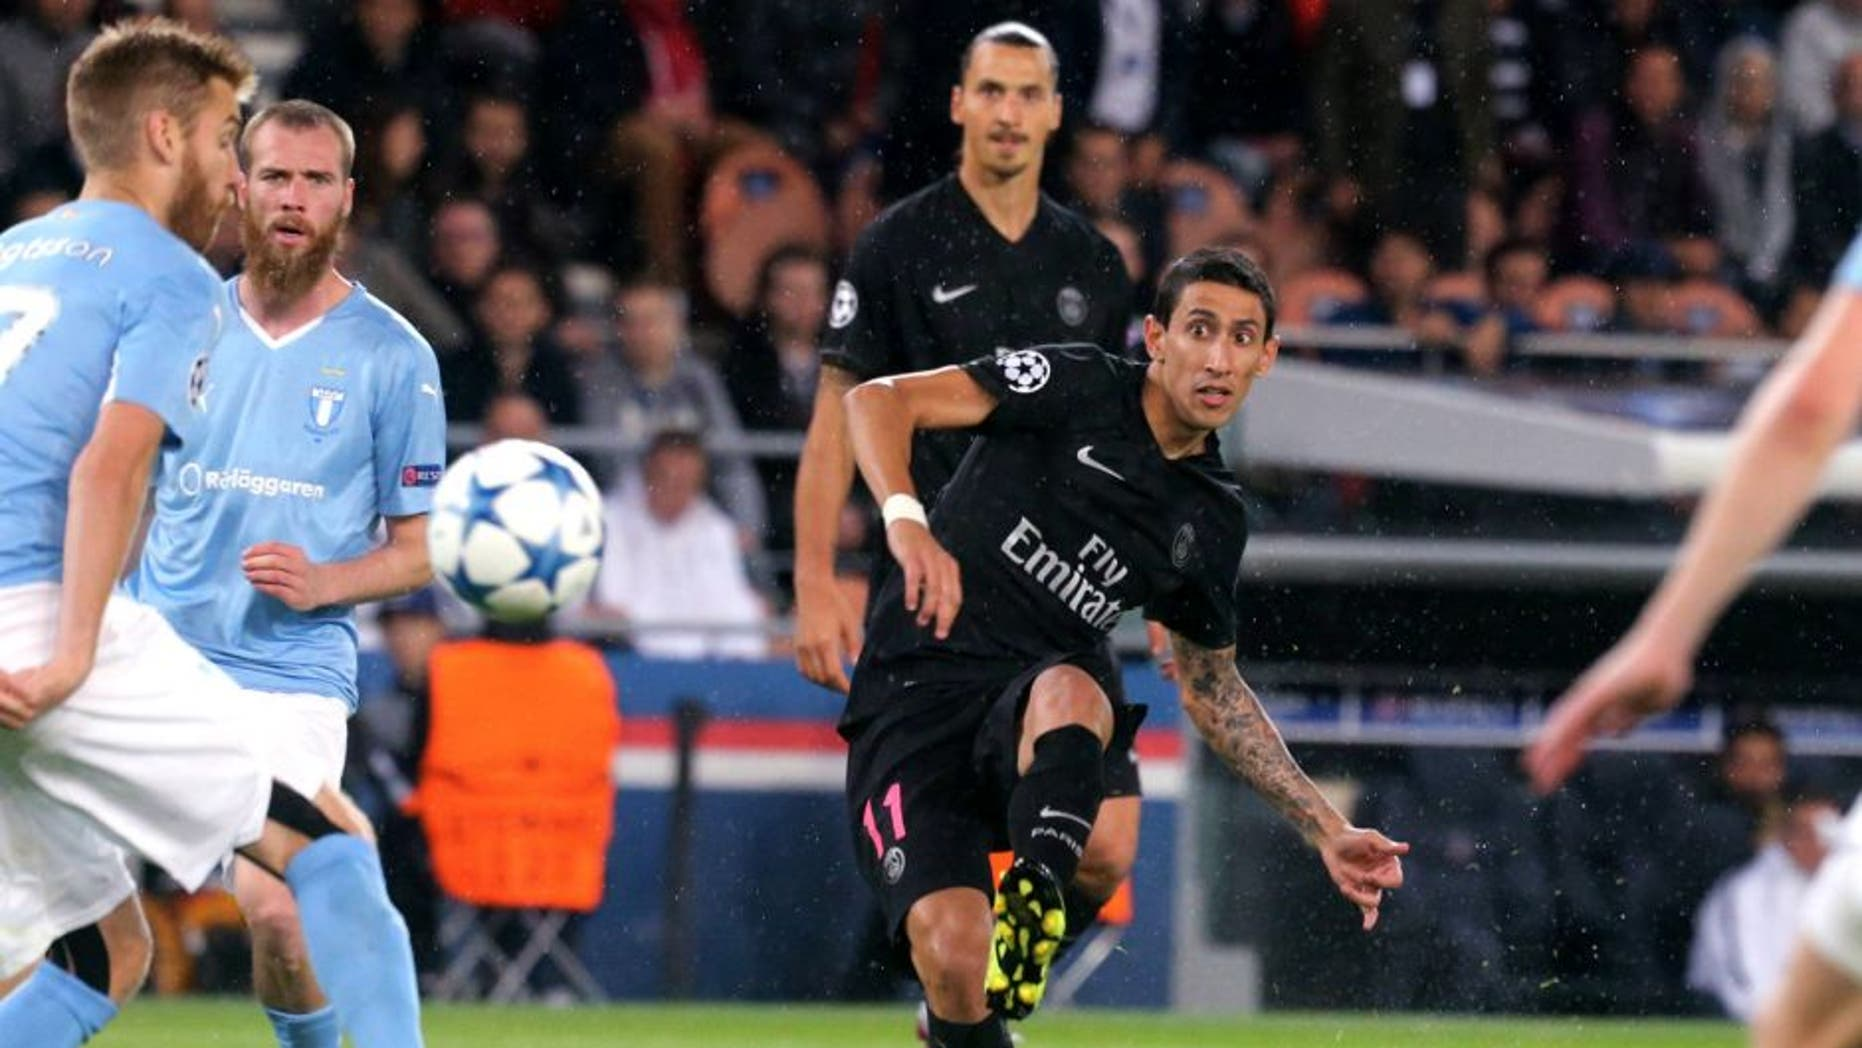 PARIS, FRANCE - SEPTEMBER 15: Angel Di Maria of Paris Saint-Germain in action with Zlatan Ibrahimovic during the UEFA Champions League between Paris Saint-Germain and Malmo FF at Parc Des Princes on September 15, 2015 in Paris, France. (Photo by Xavier Laine/Getty Images)